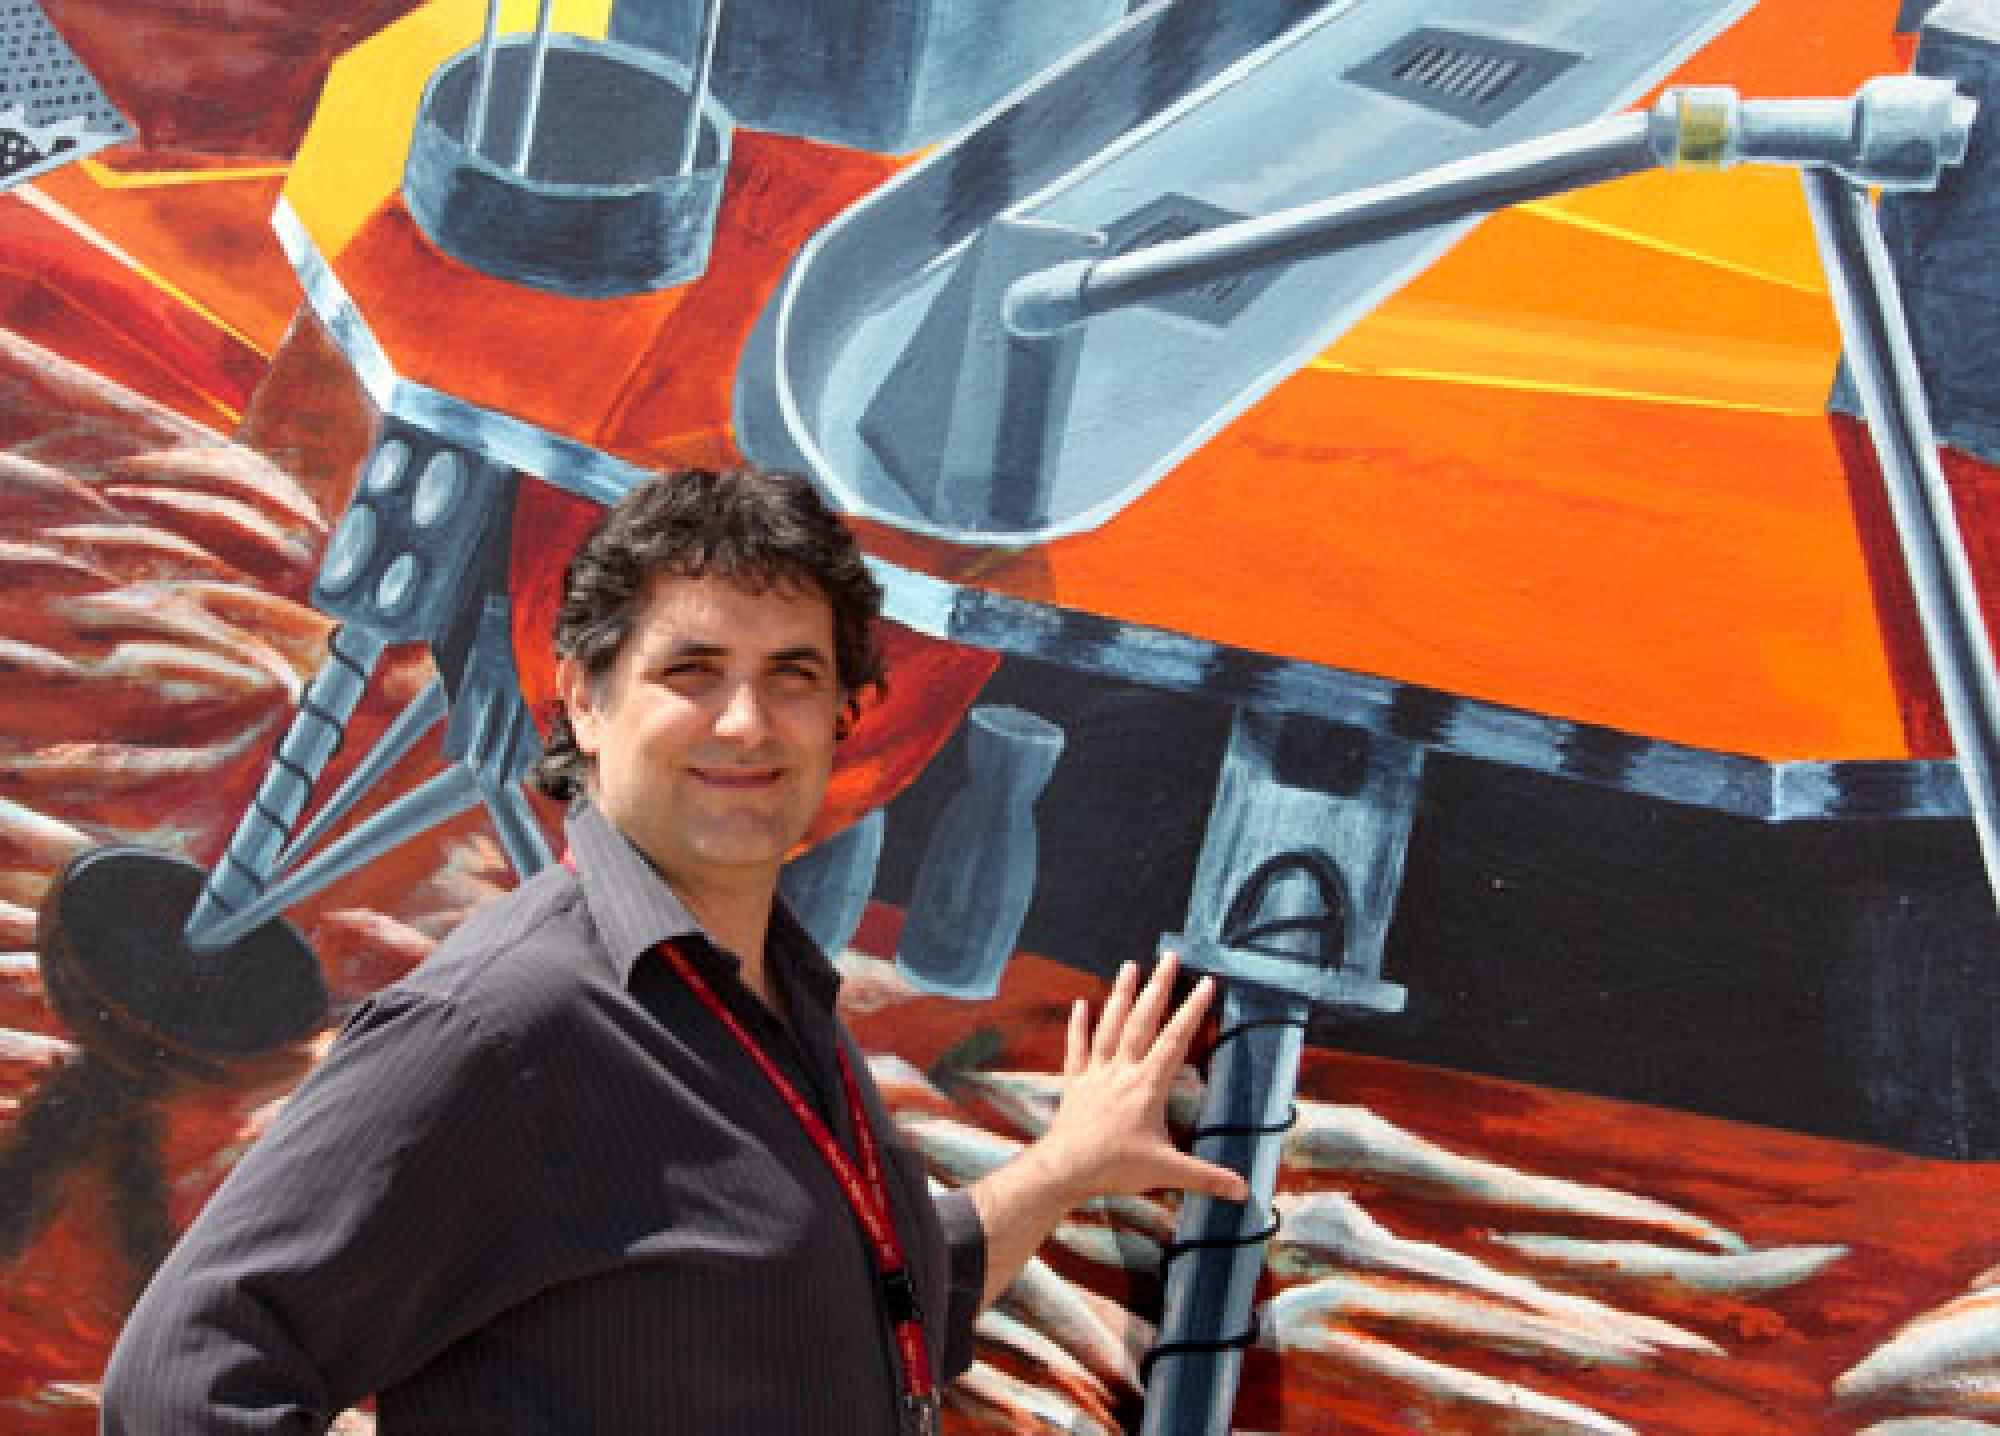 Assistant Professor Roberto Furfaro stands by the mural on the wall of LPL's OSIRIS-REx Science and Processing Operations Center in Tucson, Ariz., which is home to his Space Systems Engineering Laboratory.